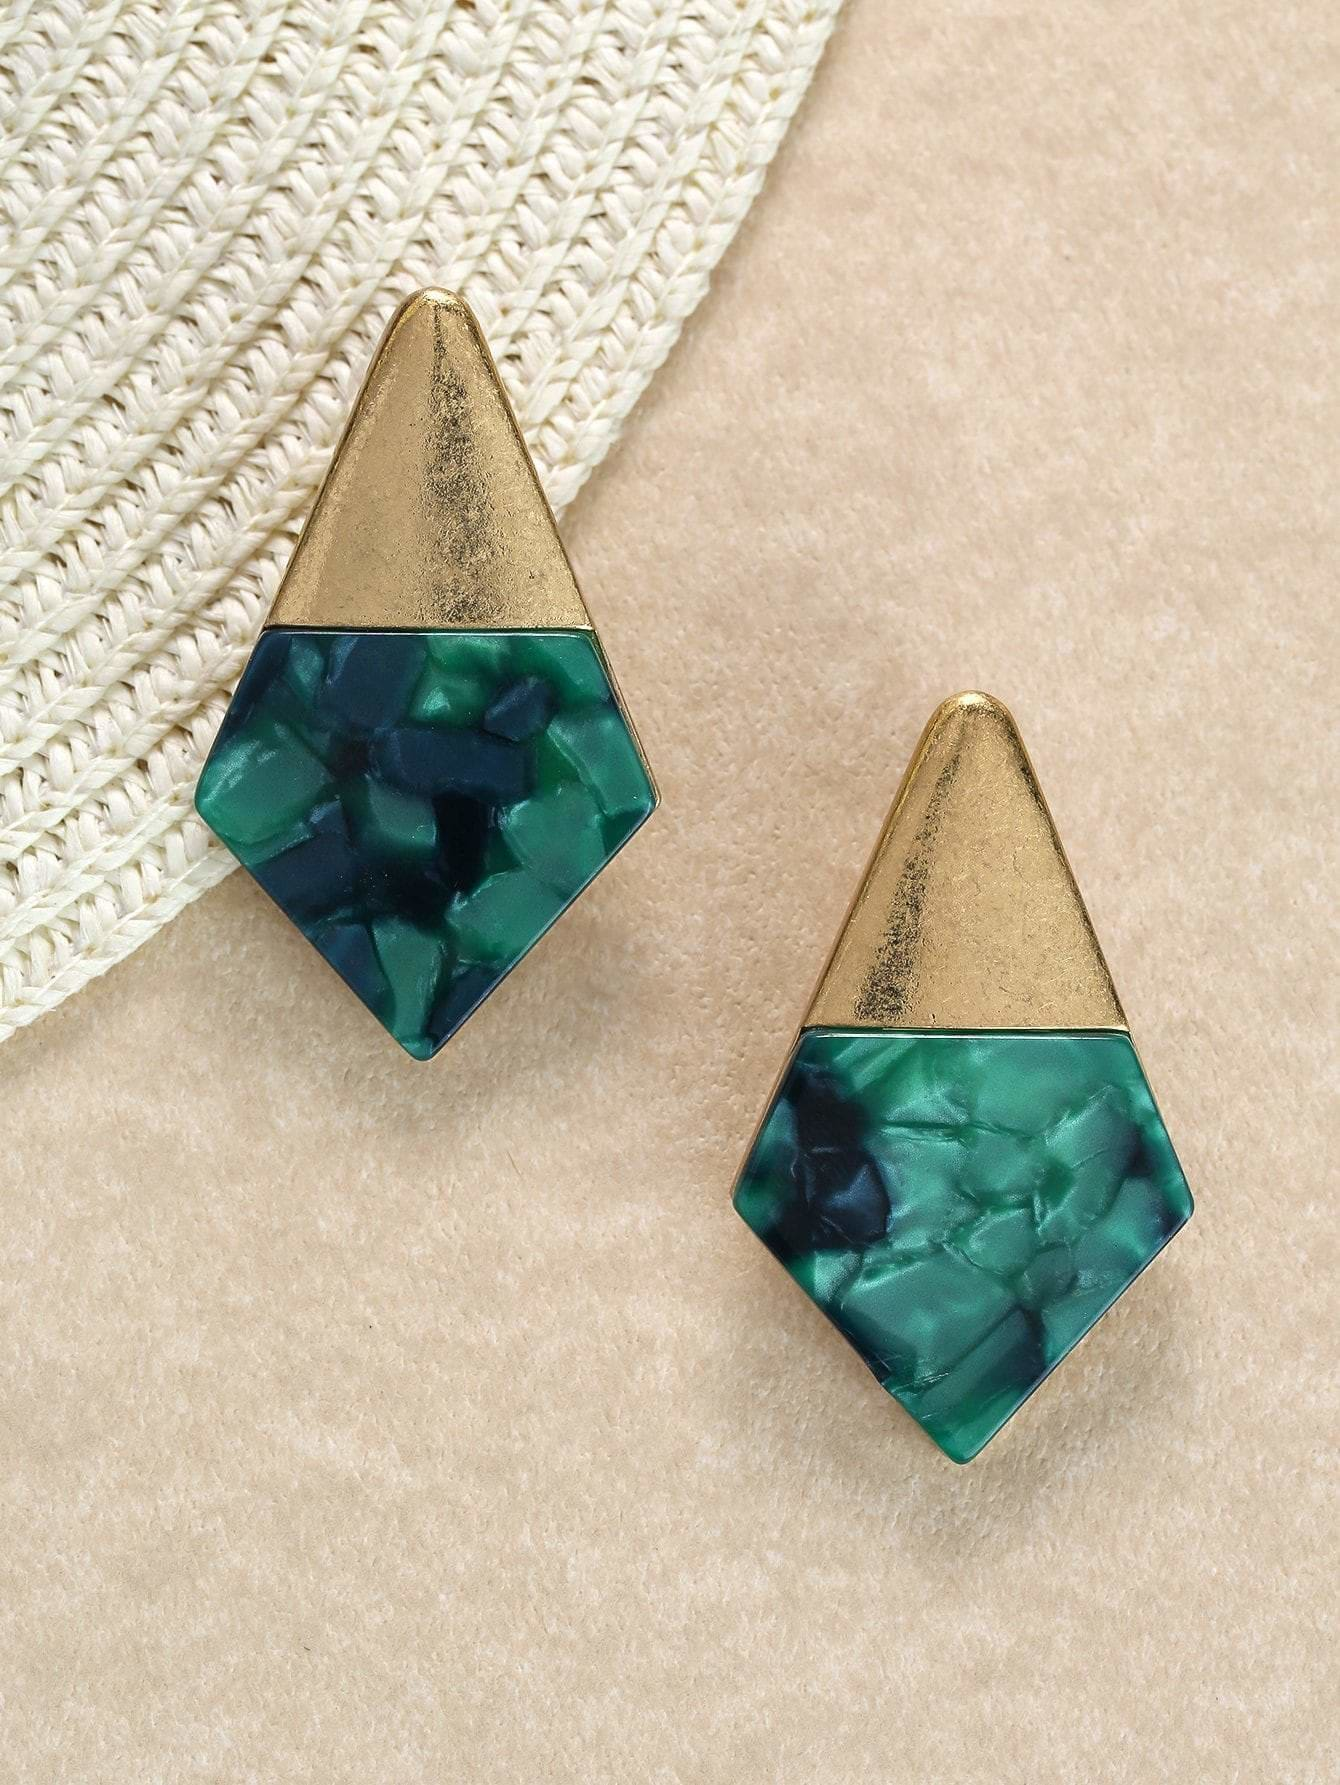 Gold And Stone Detail Diamond Shaped Earrings - Earrings